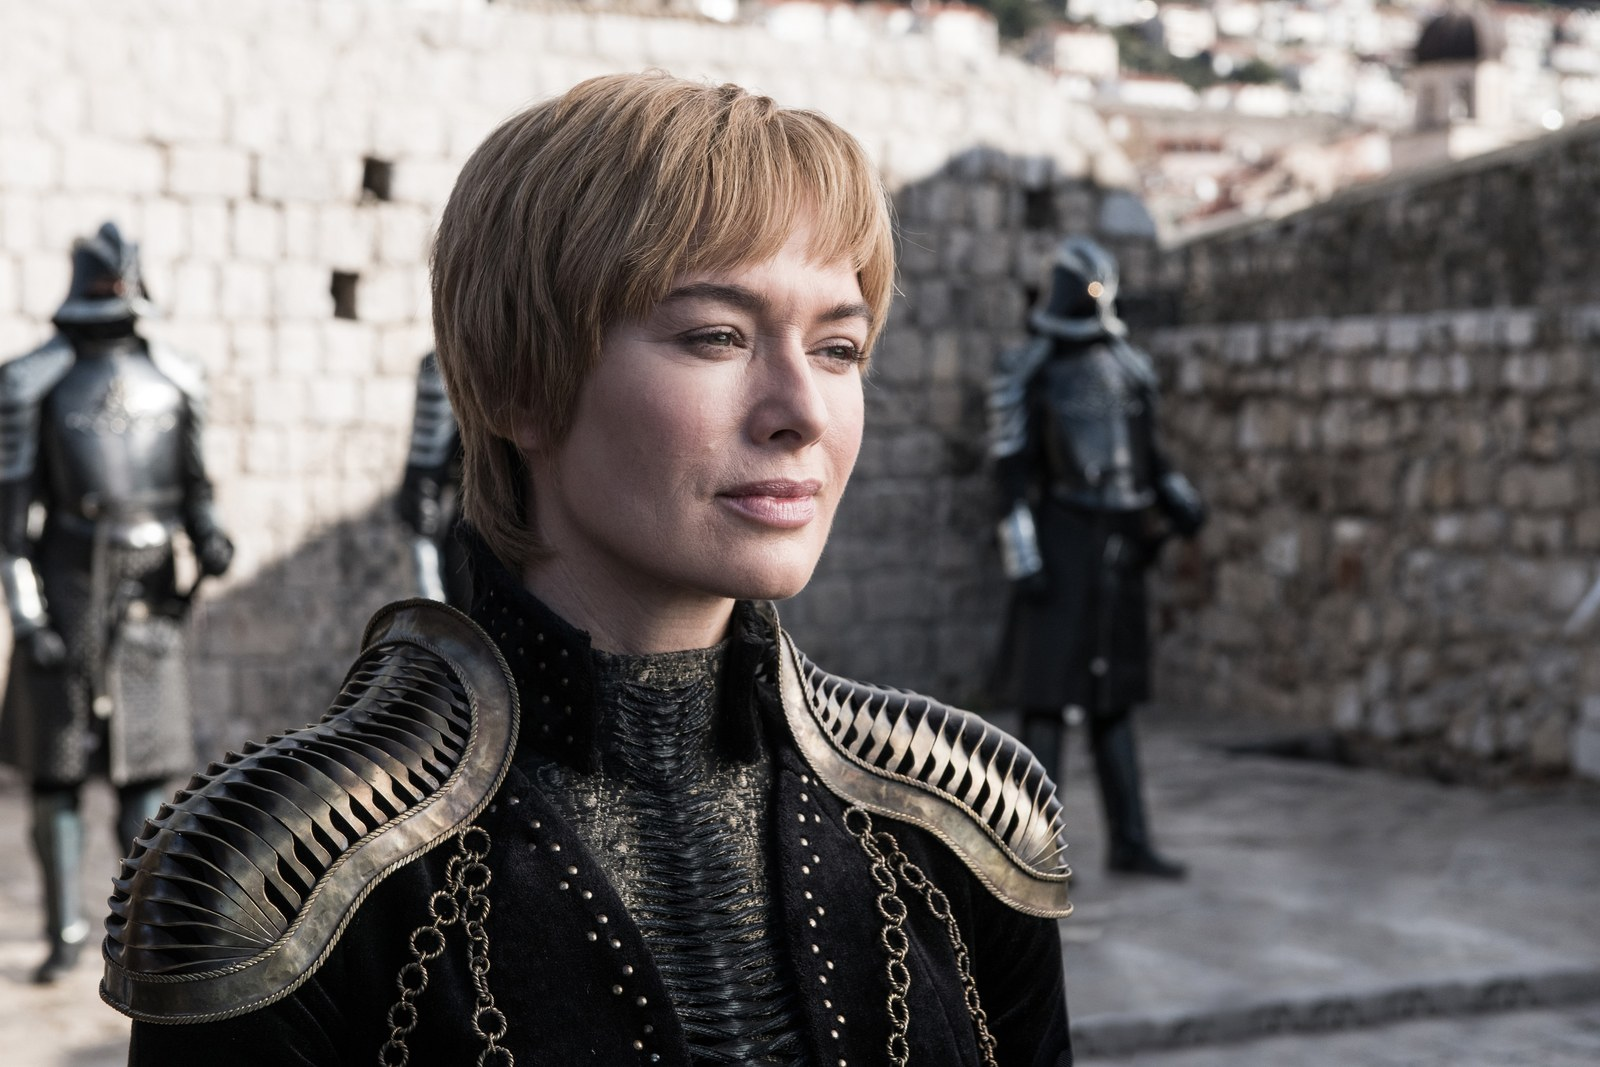 Lena Headey as Cersei on HBO's Game of Thrones